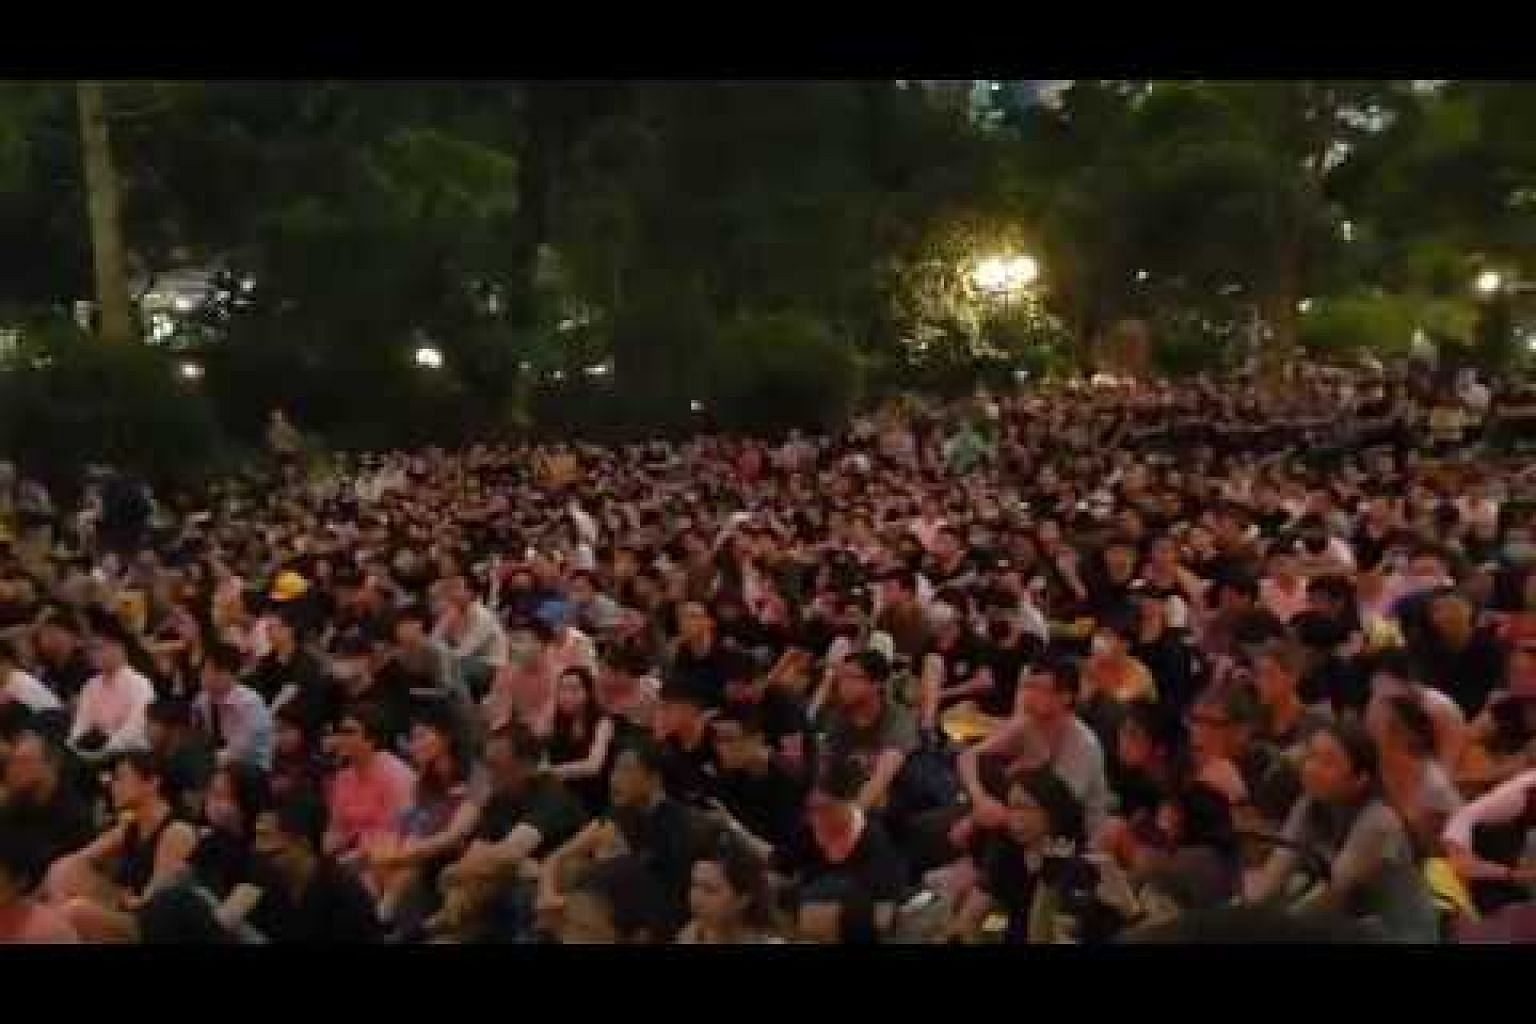 Protesters chanting 'liberate Hong Kong, revolution of our times'